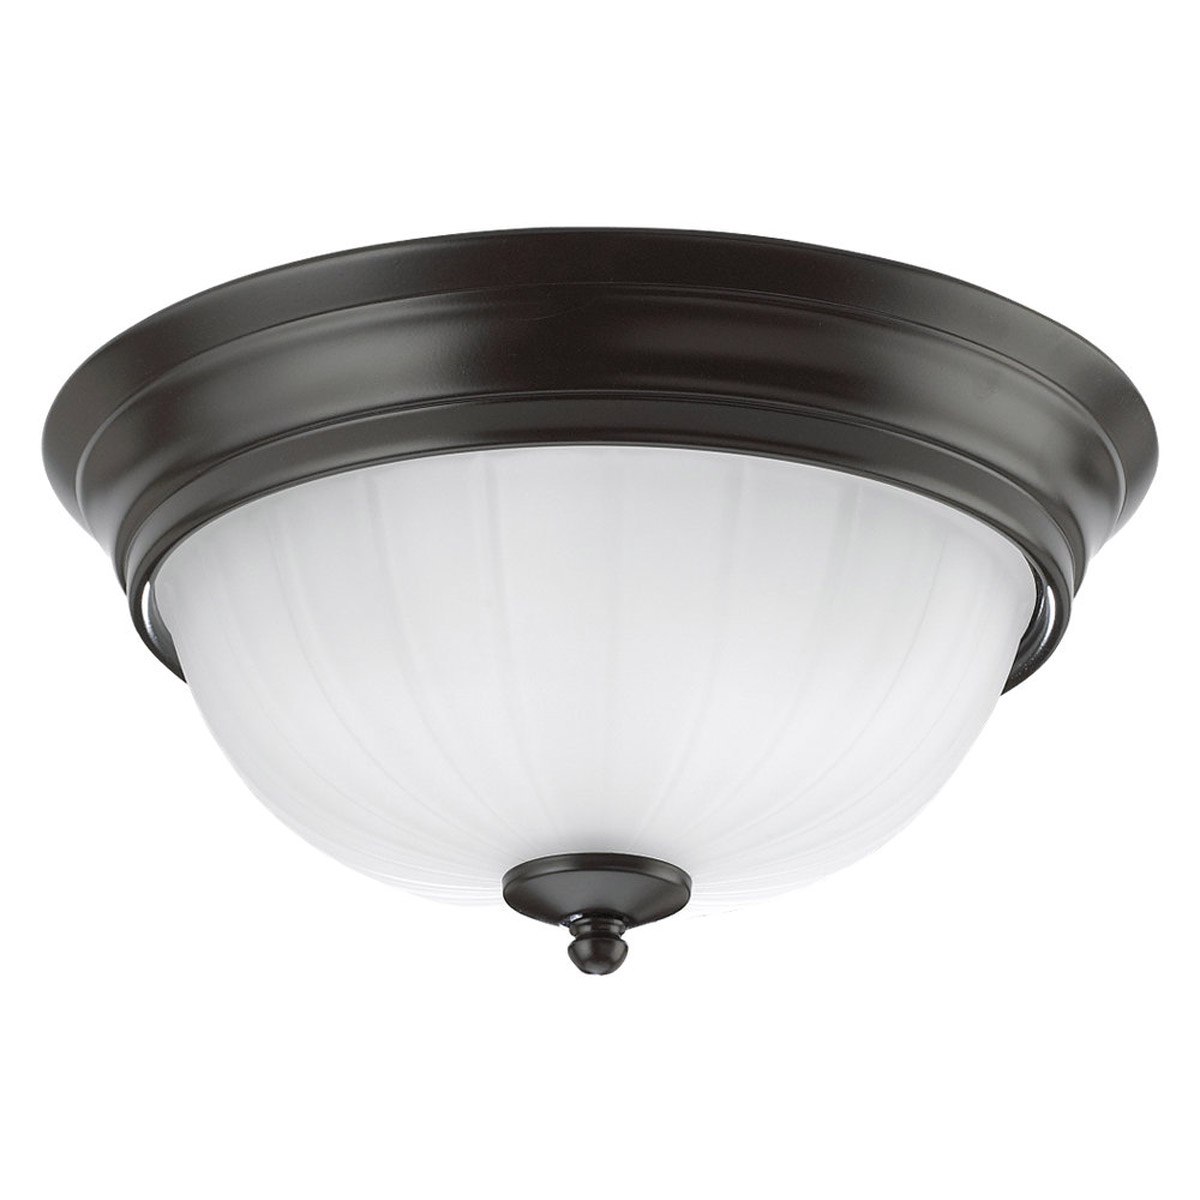 Sea Gull Lighting Floyd 1 Light Flush Mount in Heirloom Bronze 79504BLE-782